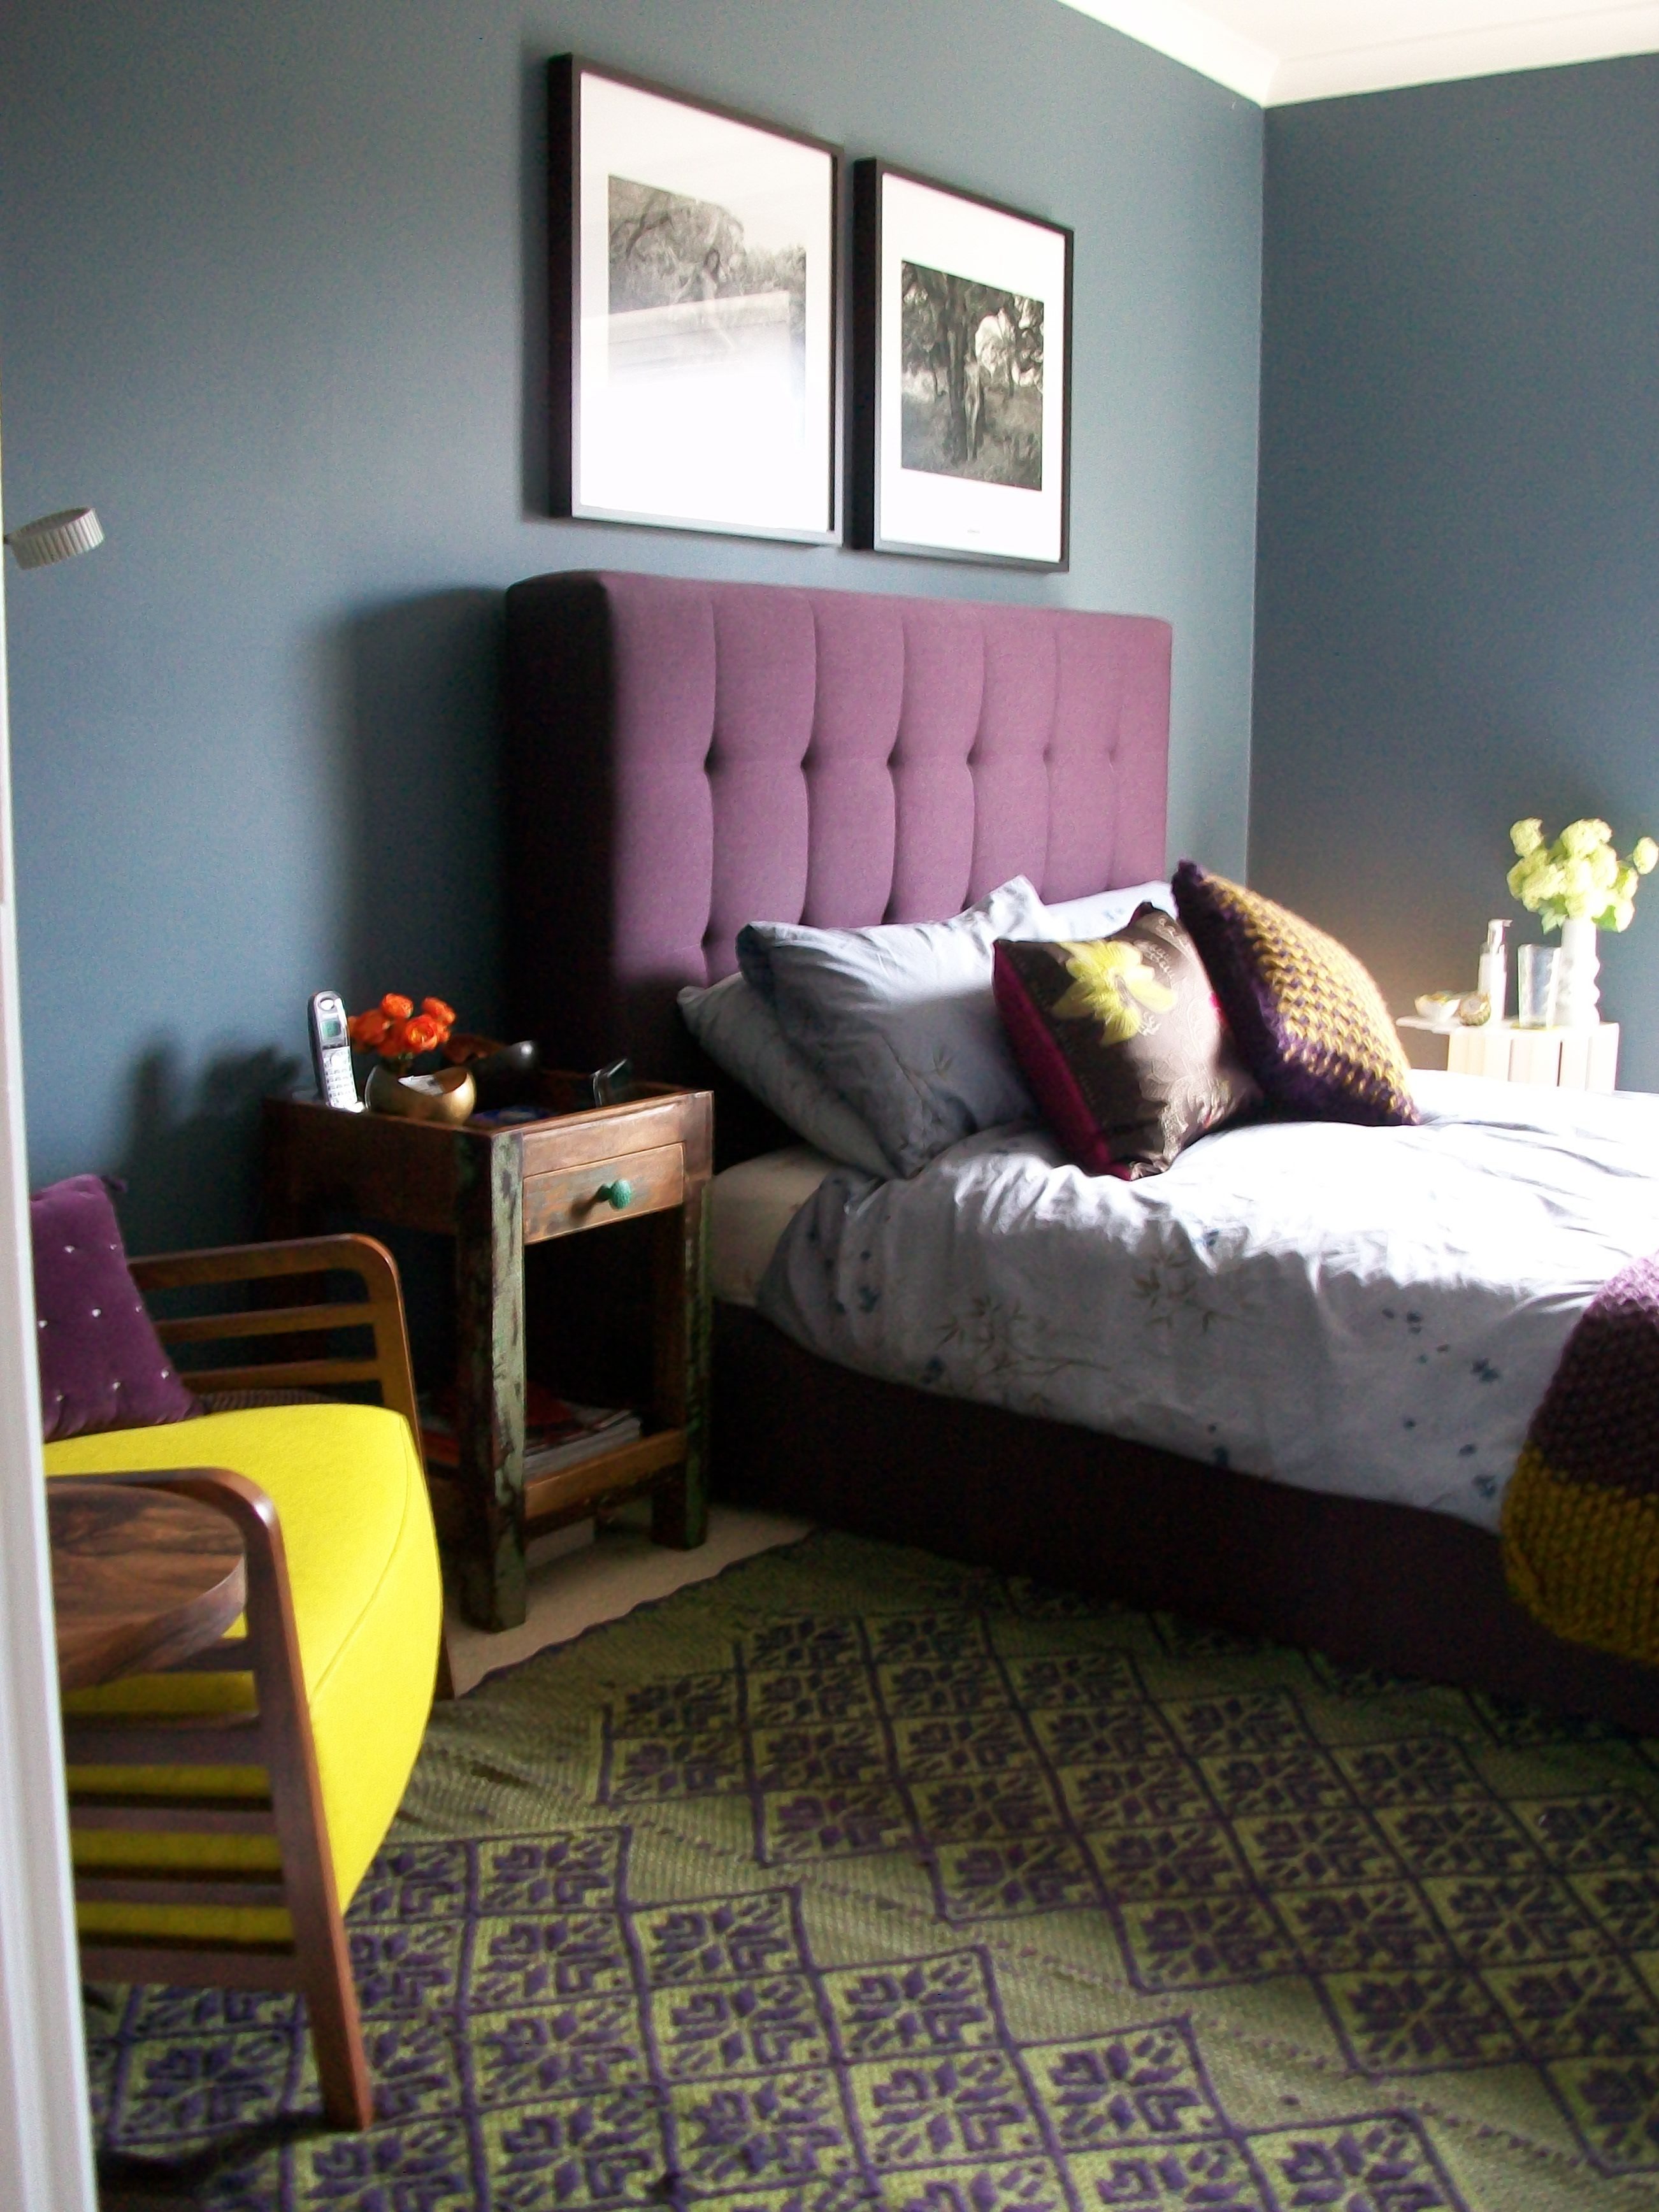 Dar Inky Blue Dulux Bedroom Mixed With Dark Purple Green Bedside 40x40cm Table From Little